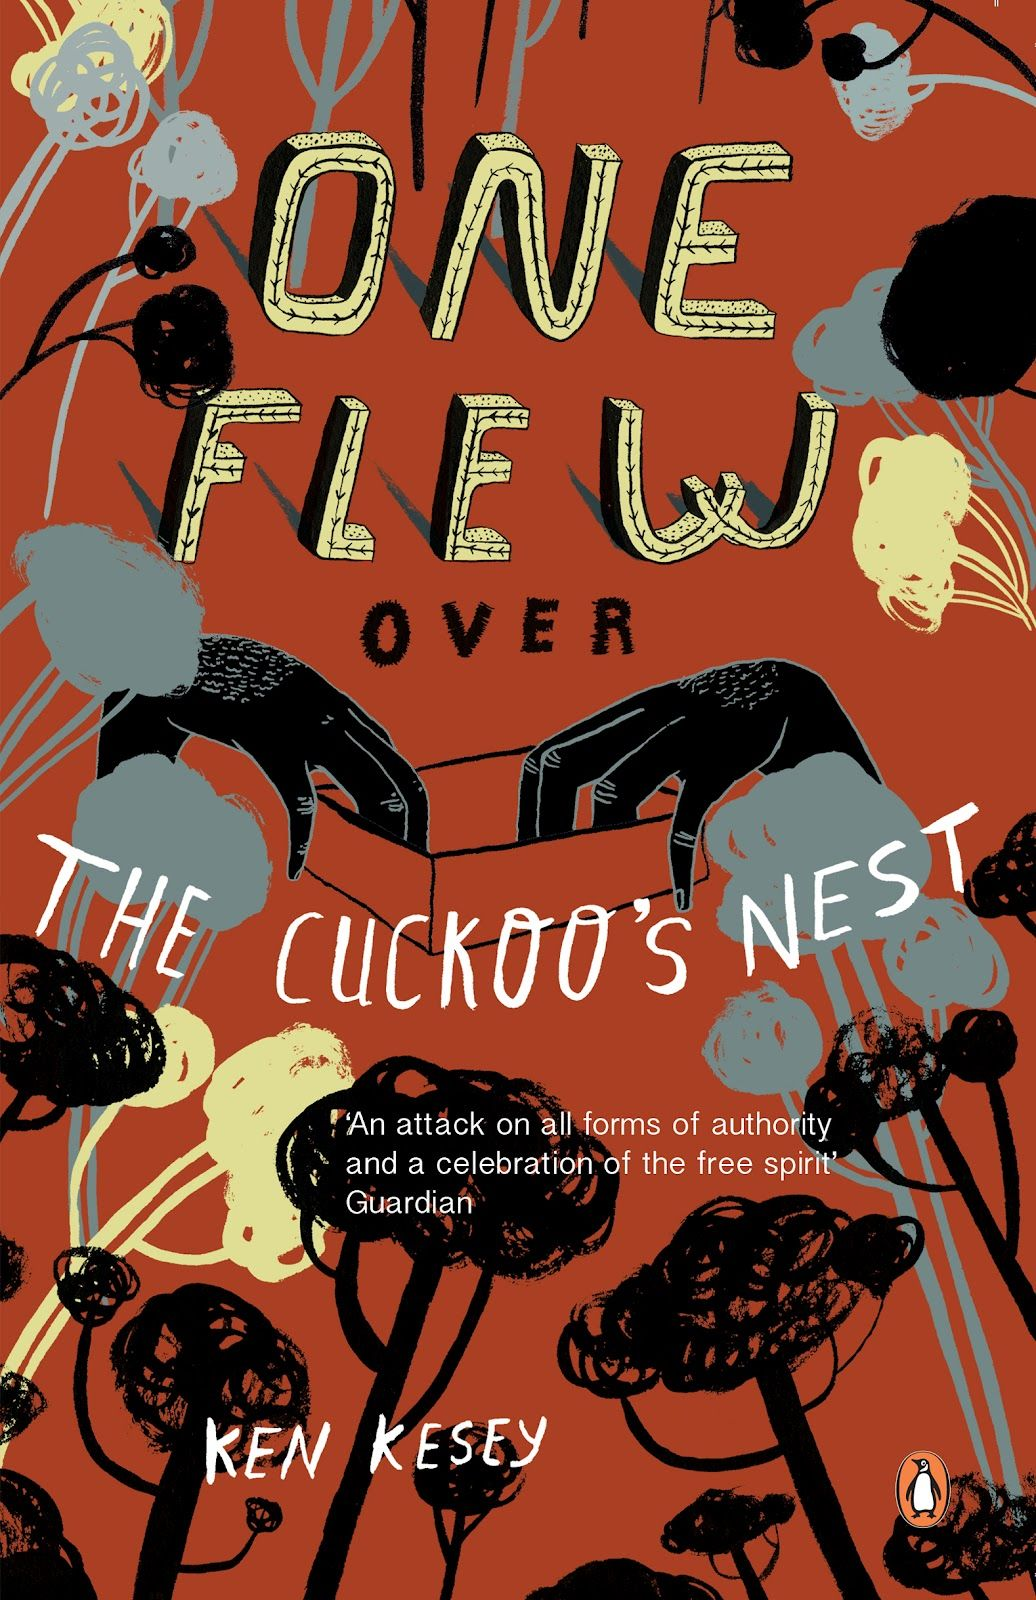 paige vickers one flew over the cuckoo s nest type it type it one flew over the cuckoo s nest